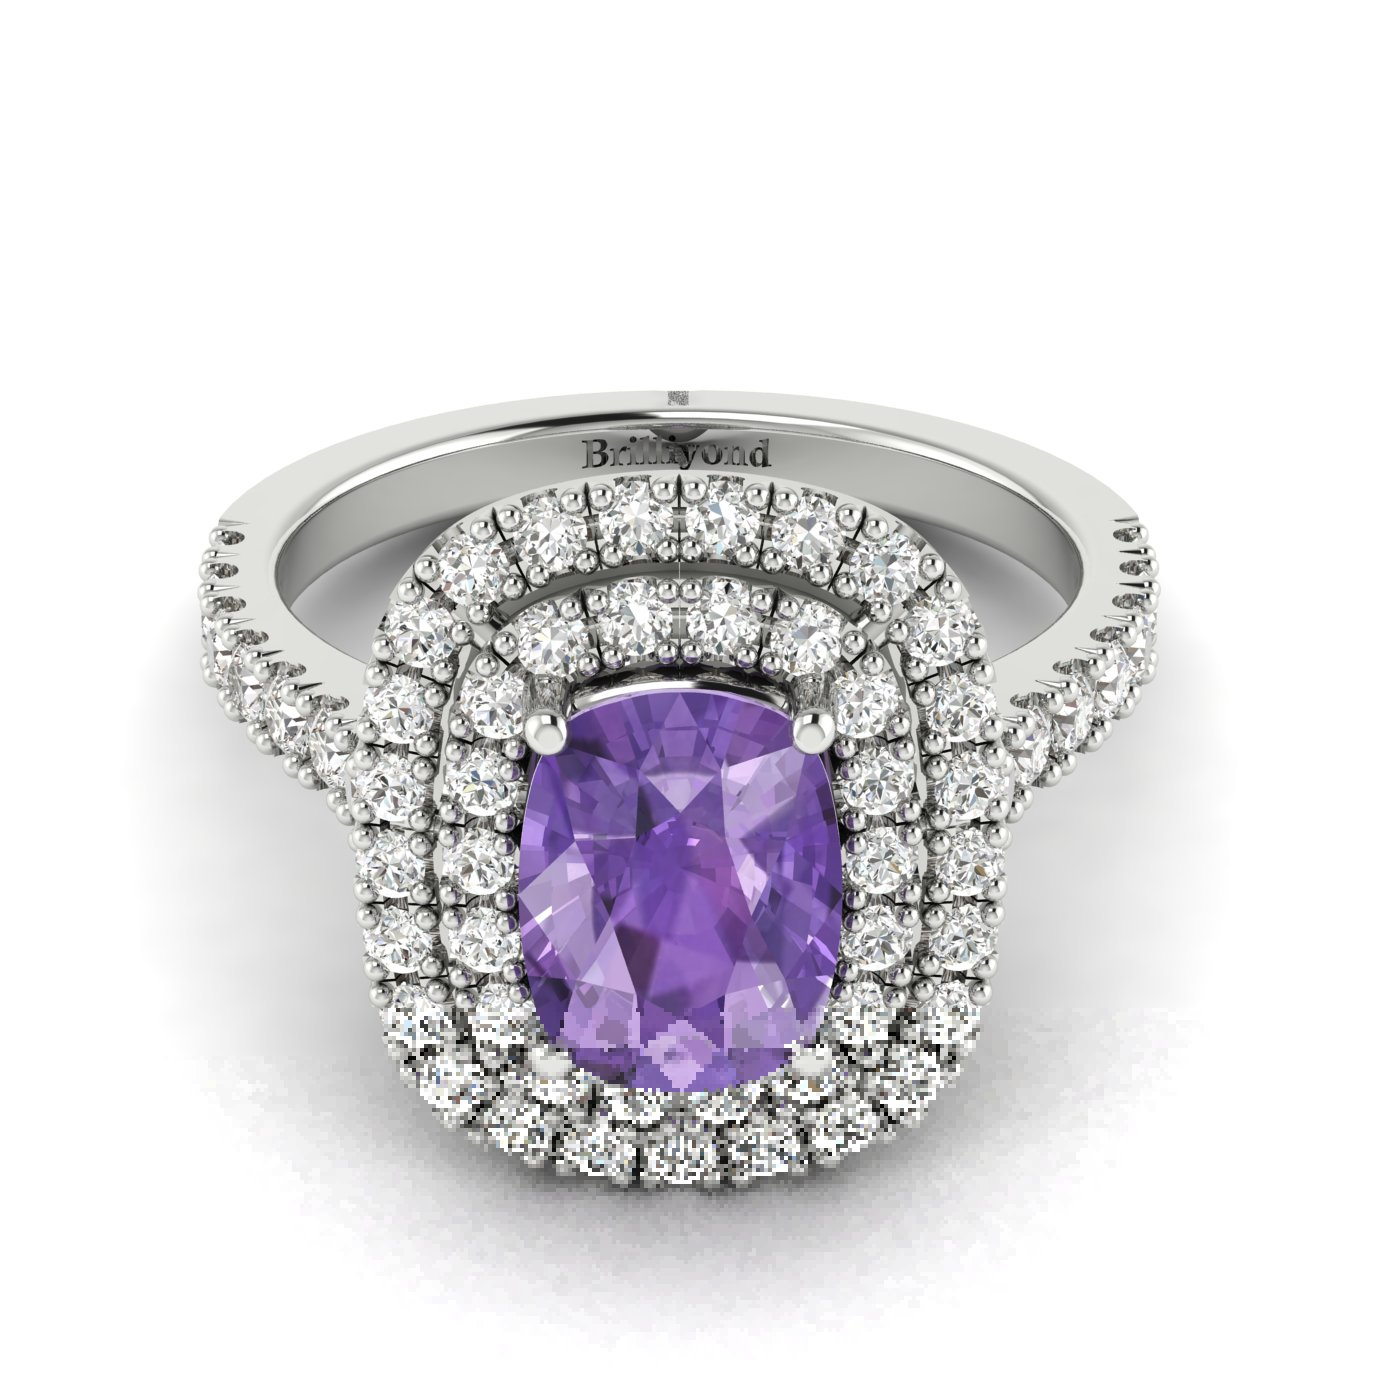 Cushion Cut Amethyst with CZ on 18k White Gold Band